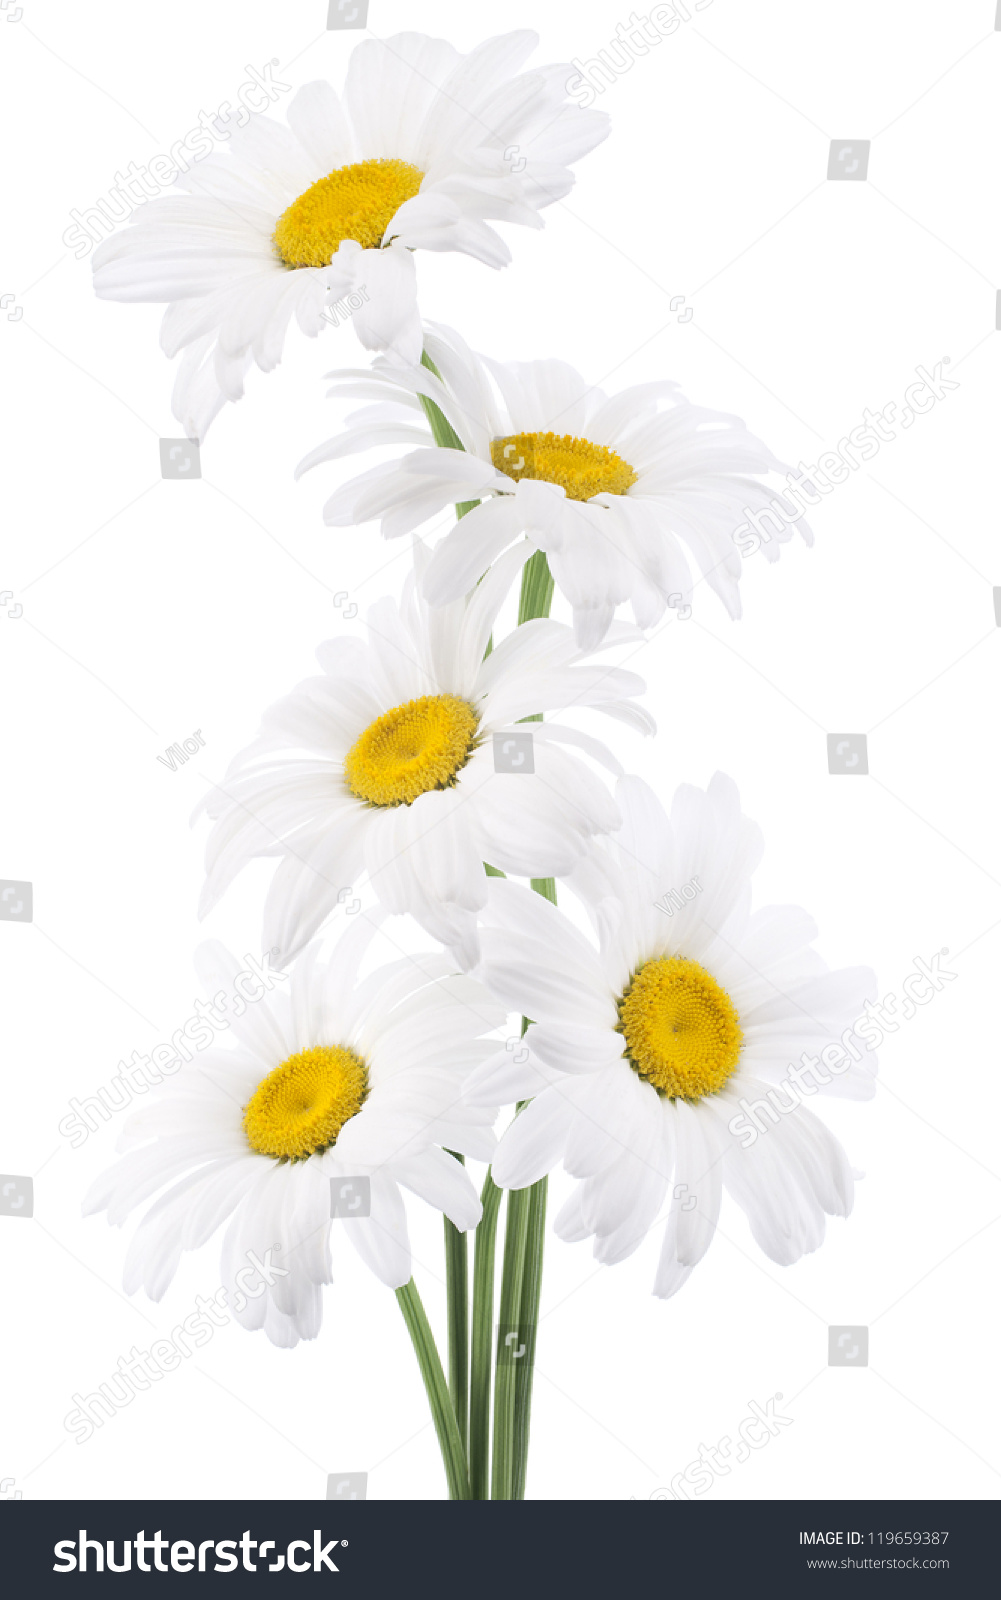 Royalty Free Studio Shot Of White Colored Daisy 119659387 Stock